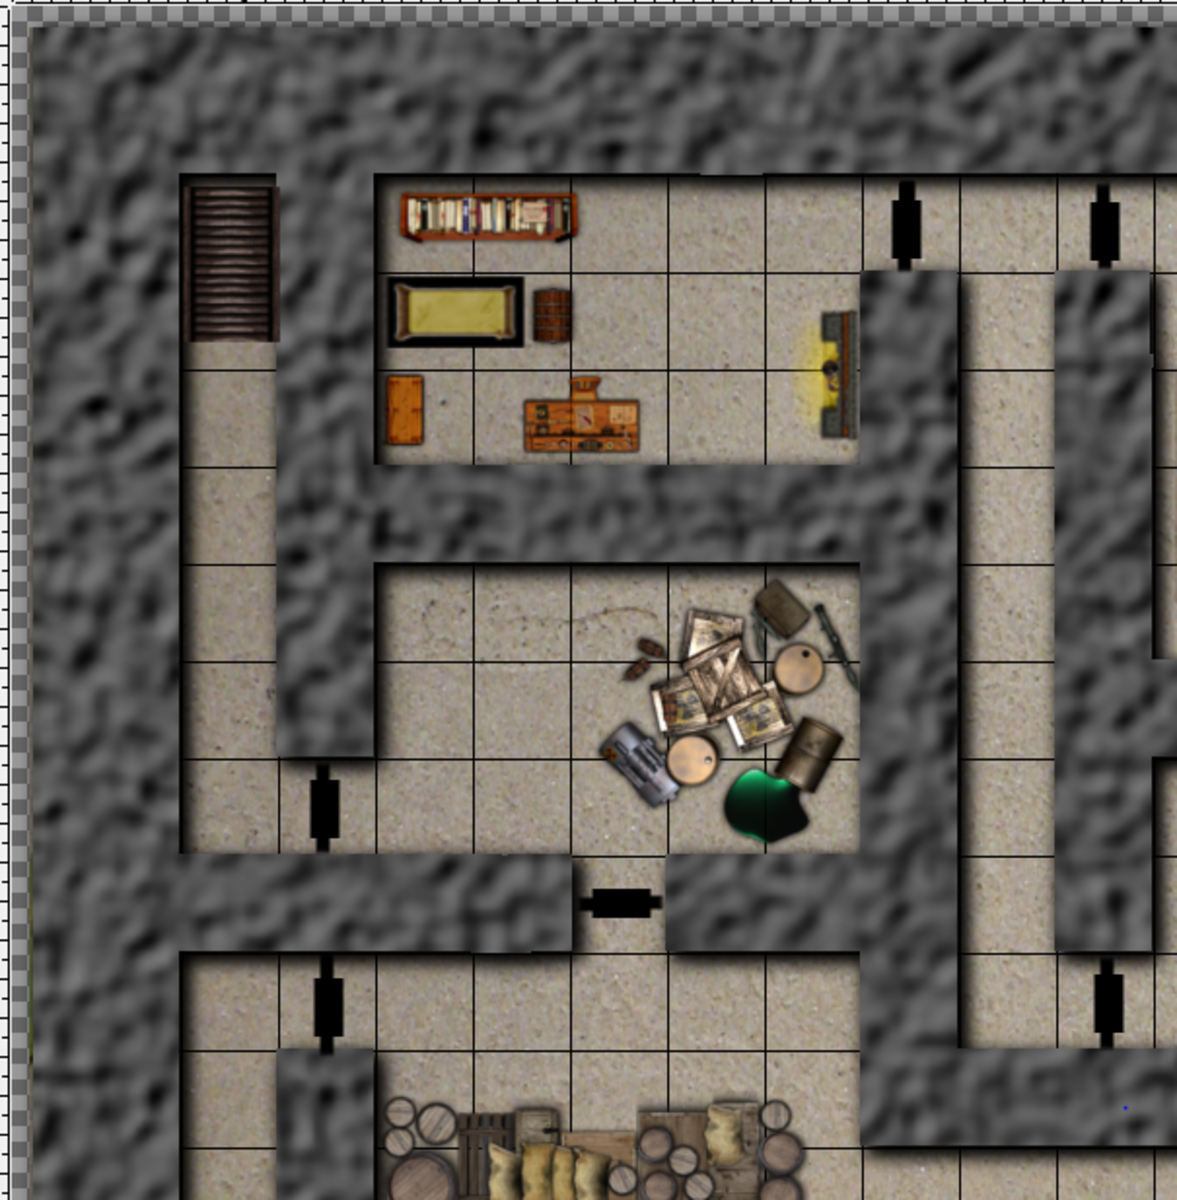 Creating a Fantasy Dungeon Map with GIMP 2.8